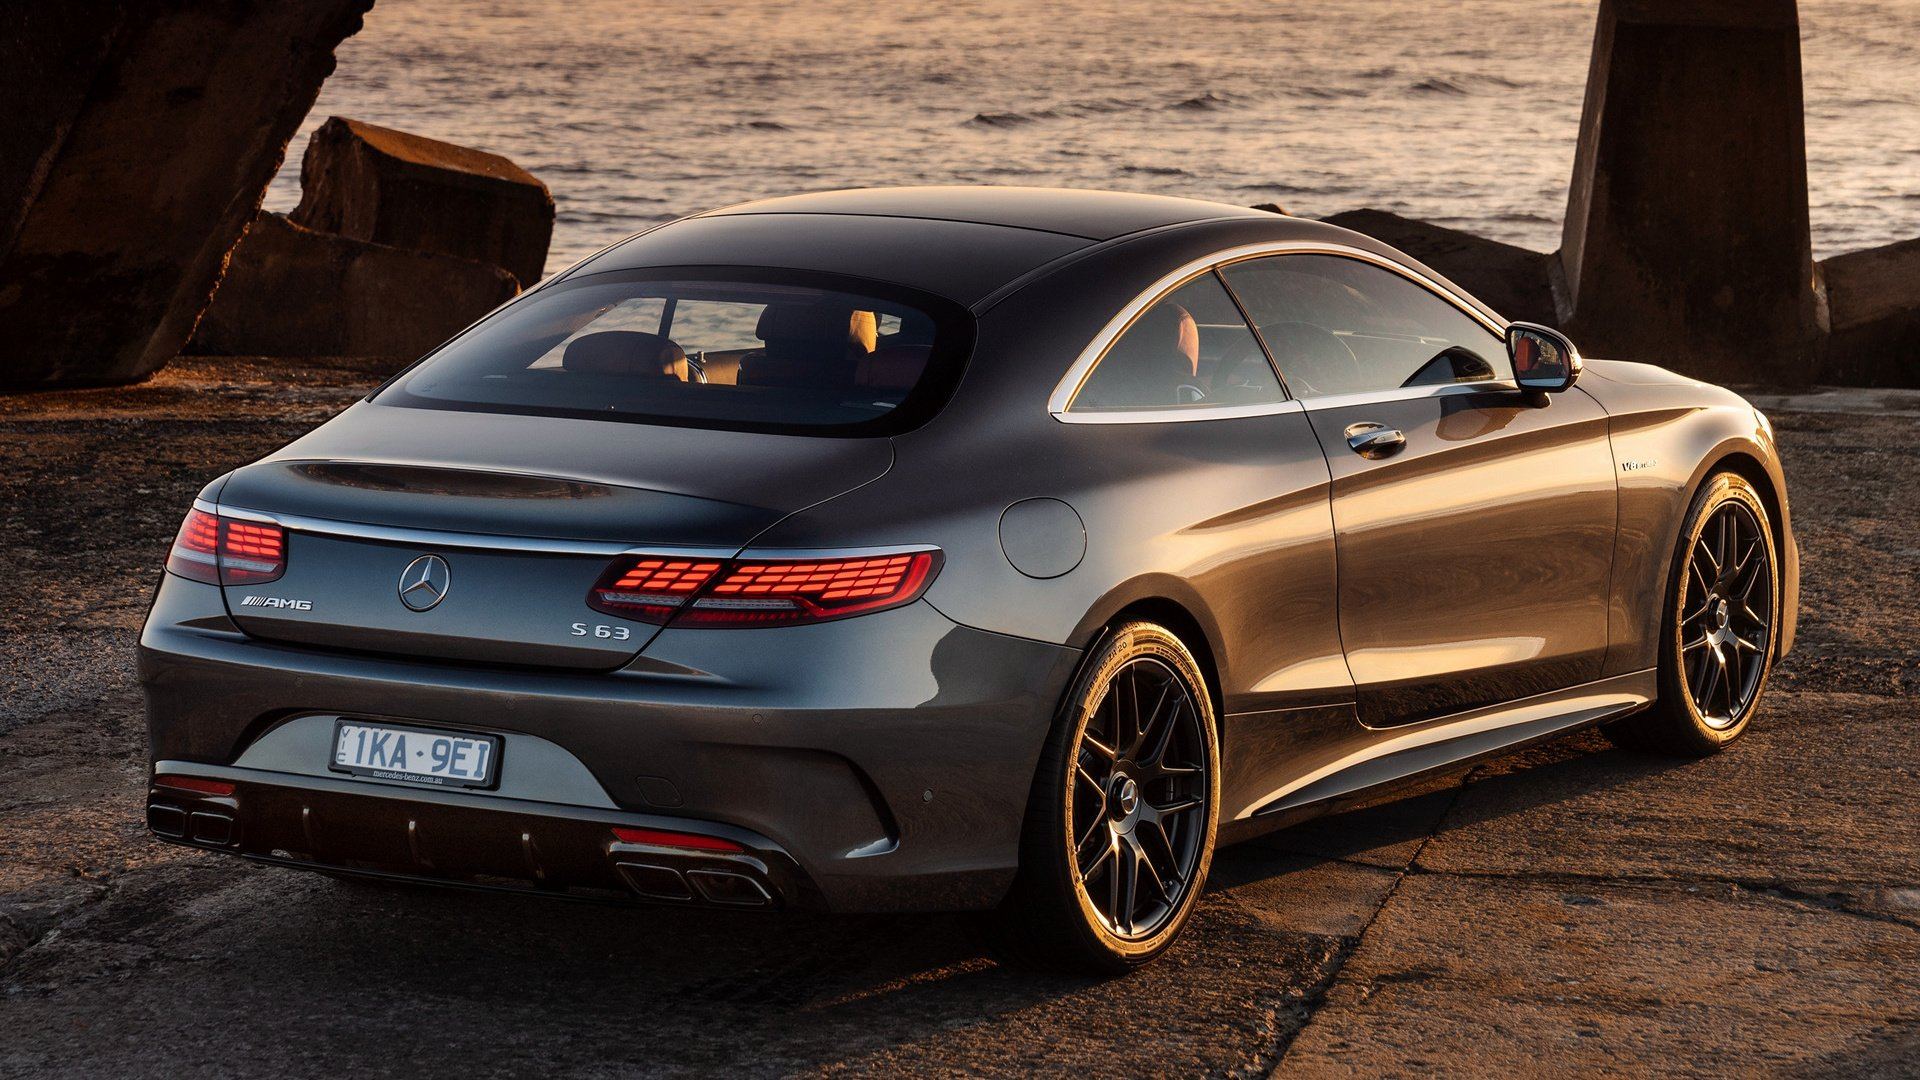 2018 Mercedes-AMG S 63 Coupe HD Wallpaper | Background Image